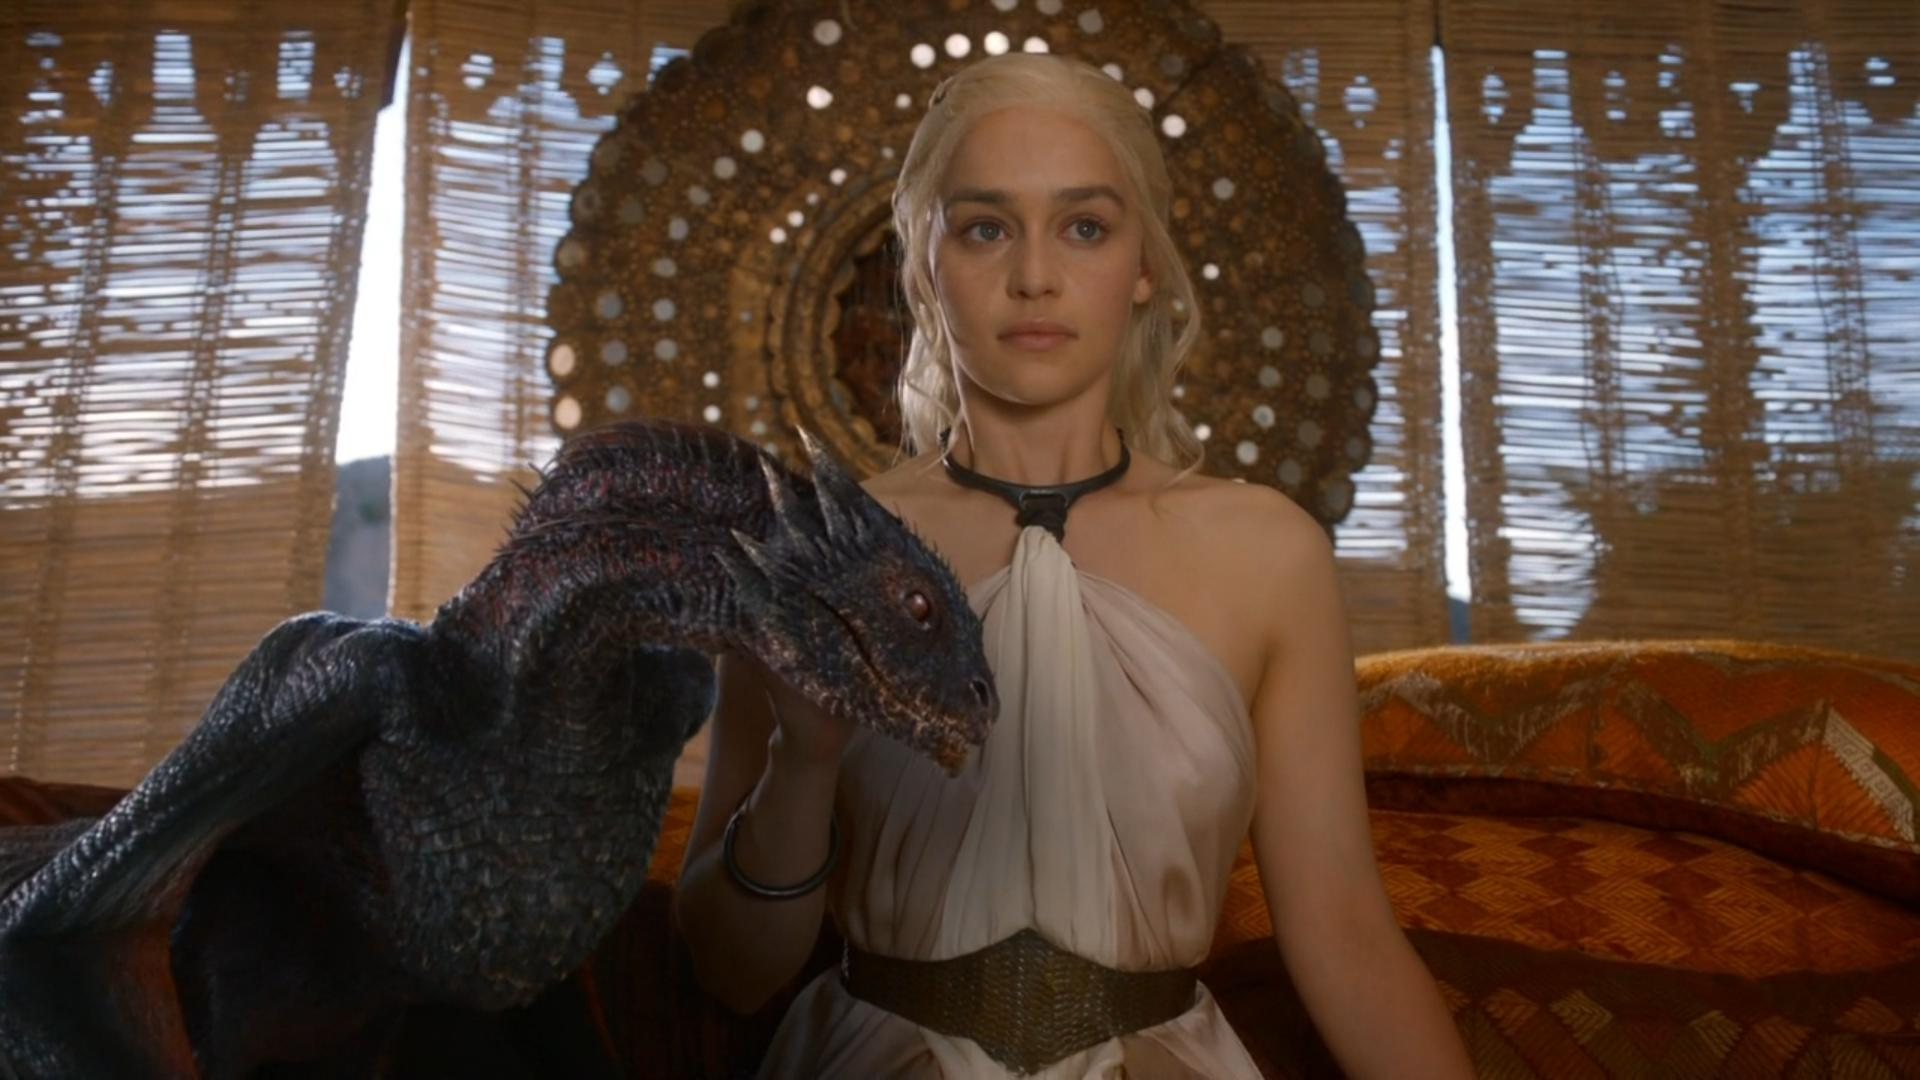 We now know Daenerys' exact chances of taking Westeros, thanks to this medieval scholar